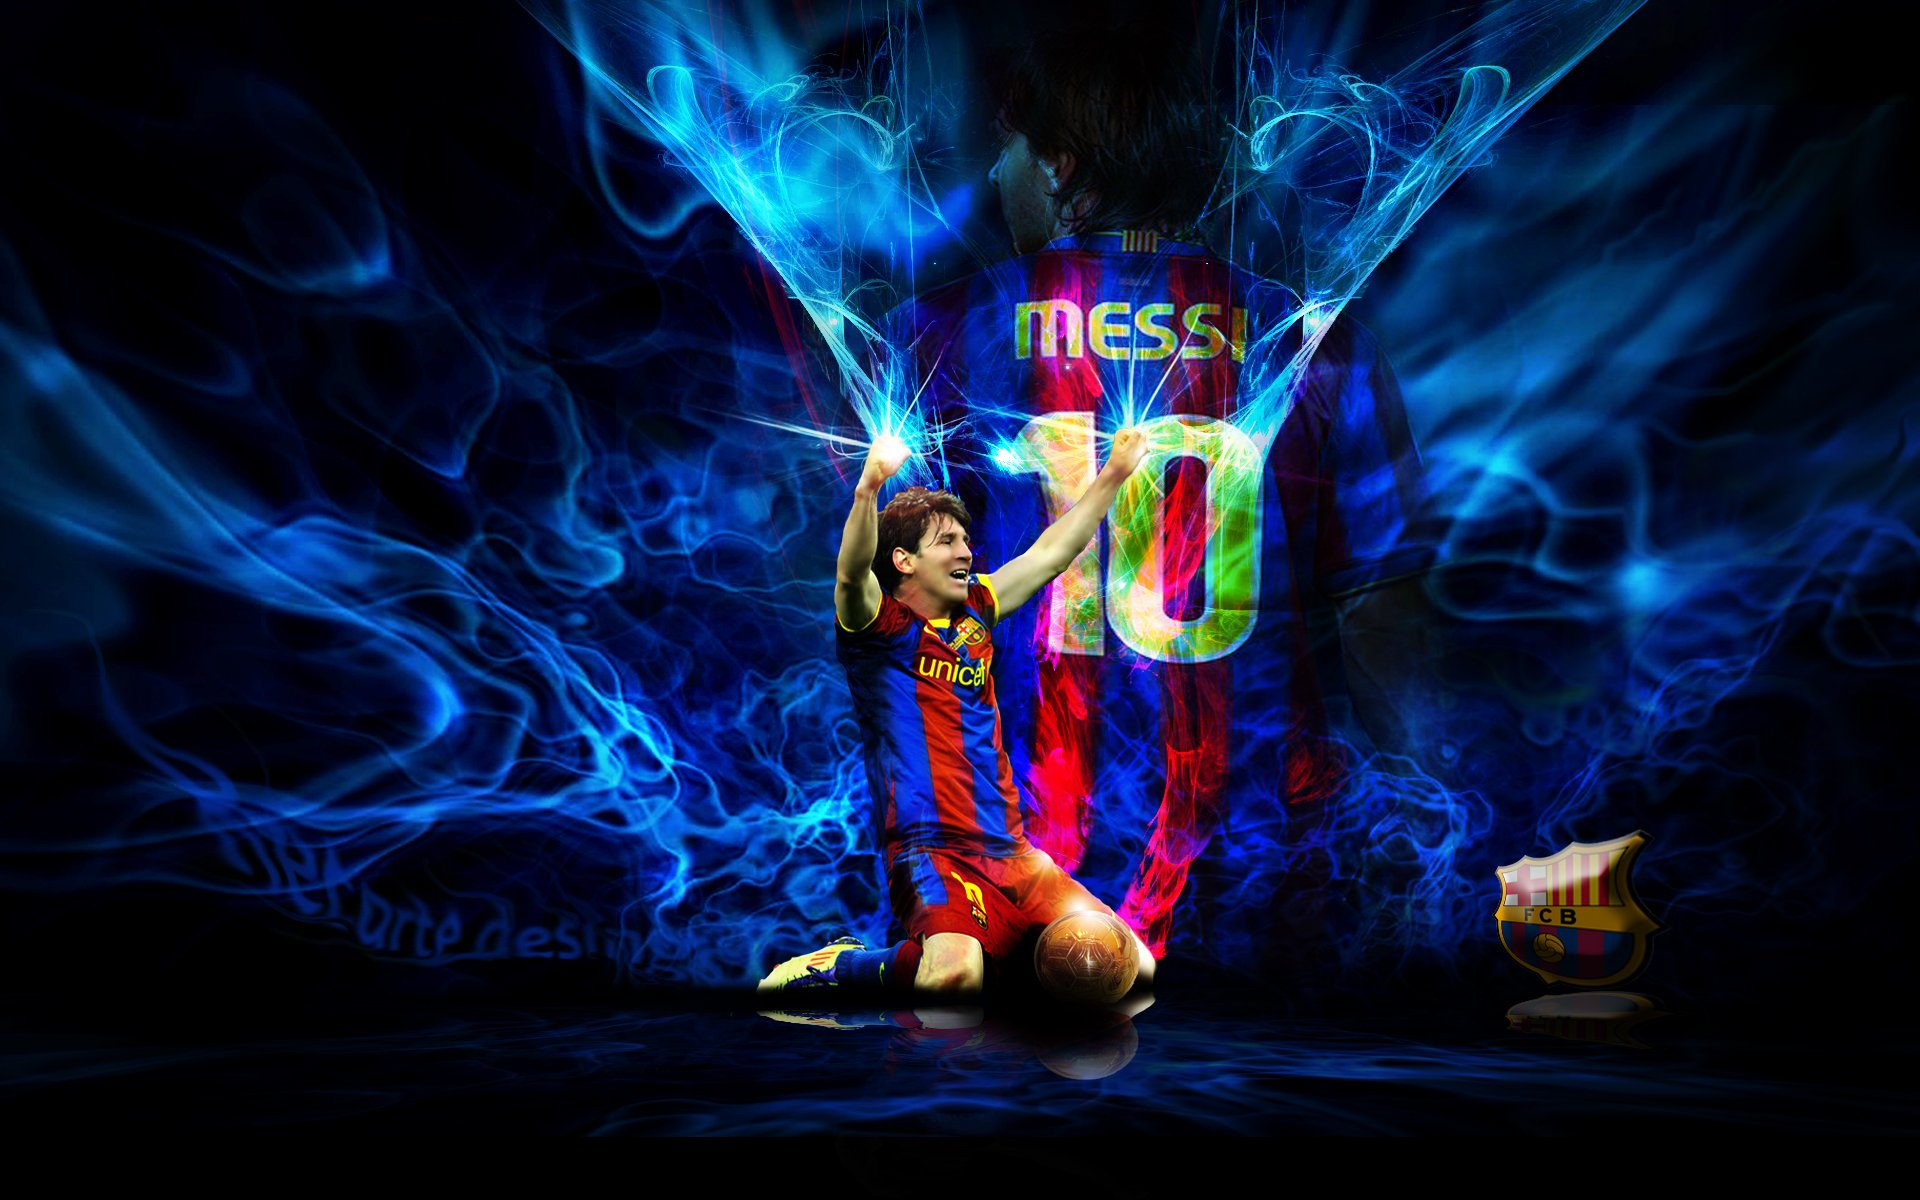 Download Cool Soccer Wallpapers 1920x1200